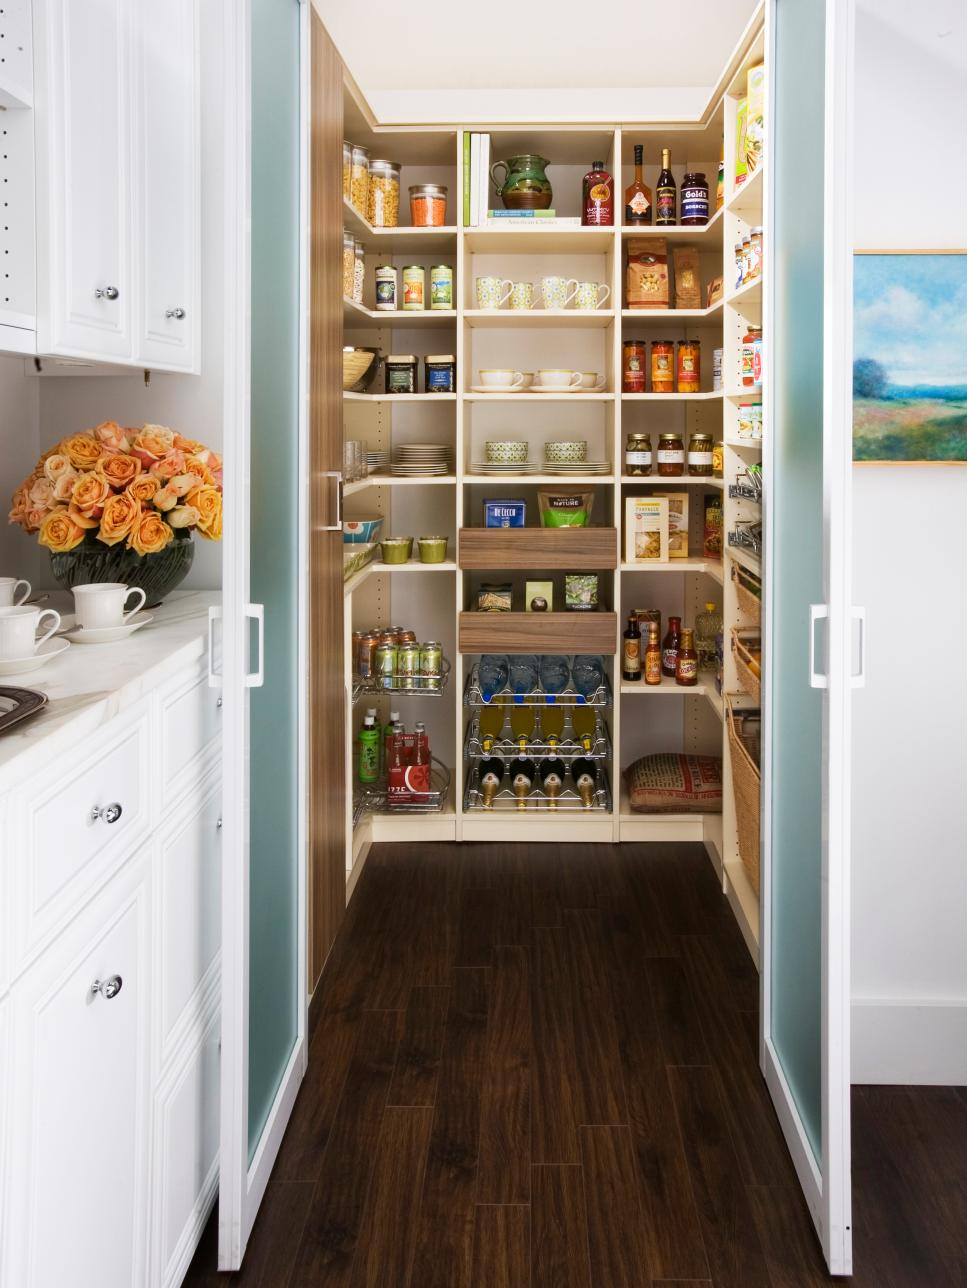 Creative Kitchen Storage   Best Online Cabinets Everyone has their own problems and pet peeves with their kitchen